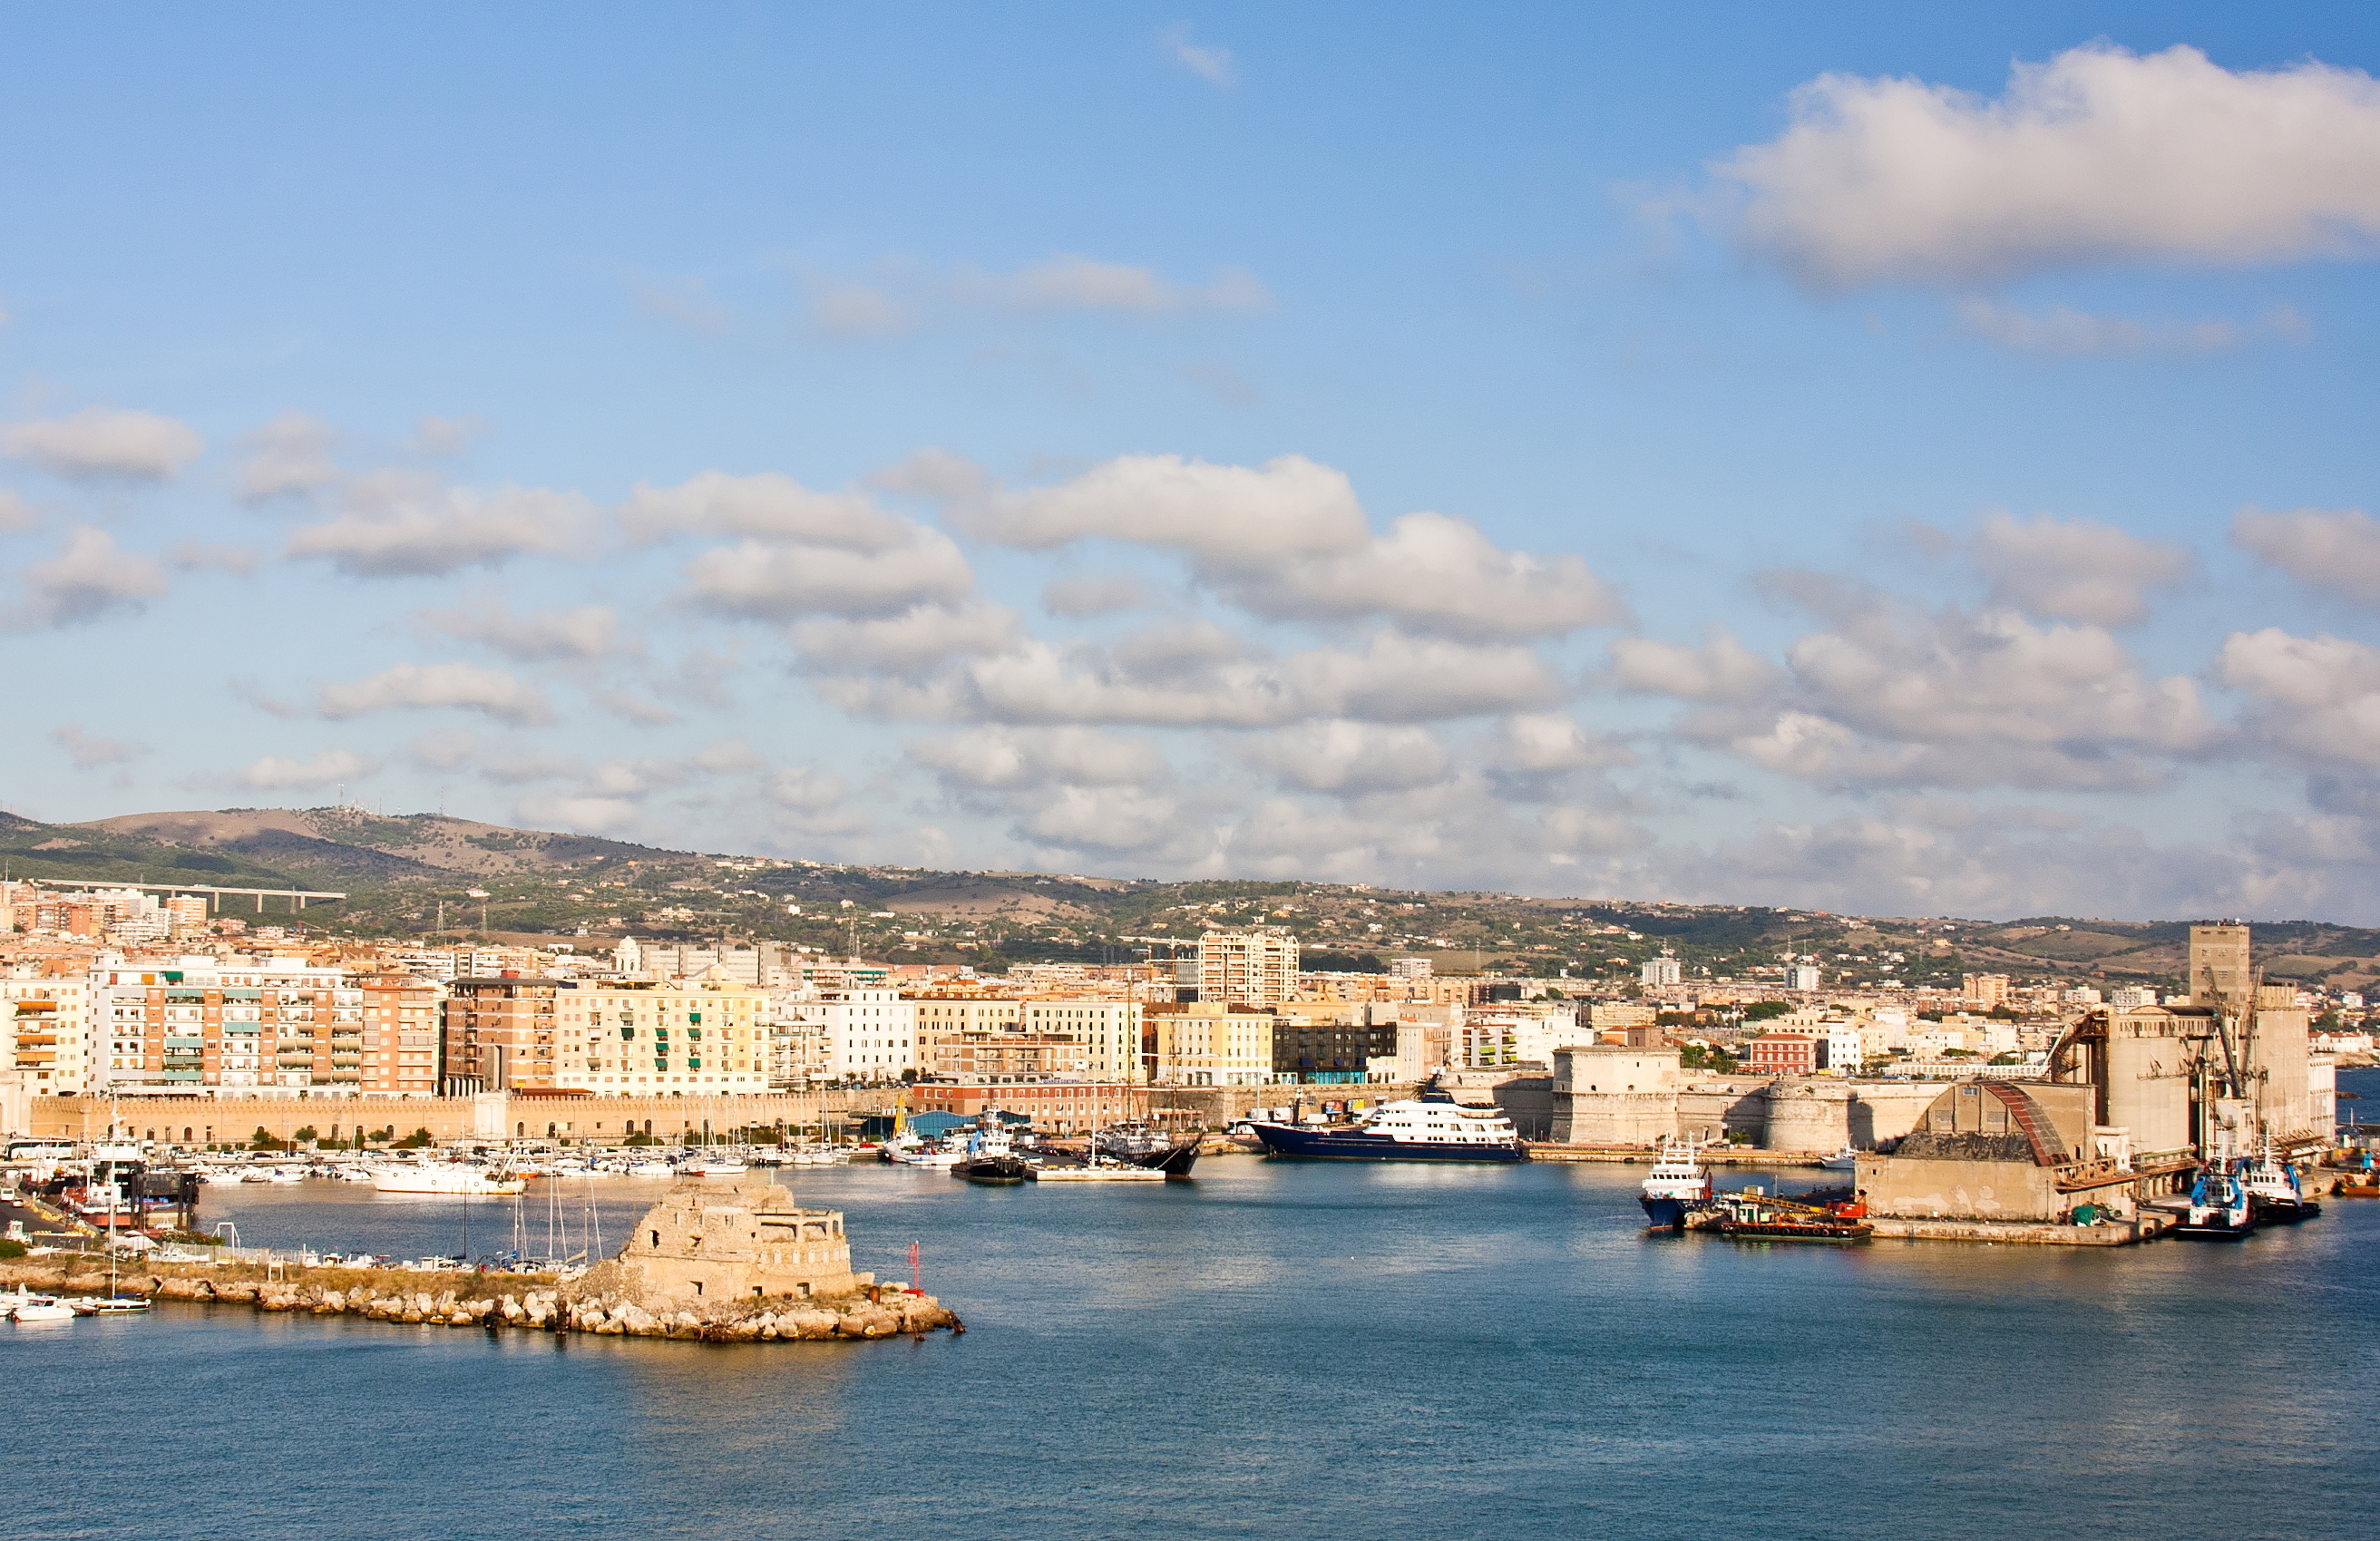 Hotels in Civitavecchia near Cruise Terminal - Port of ...